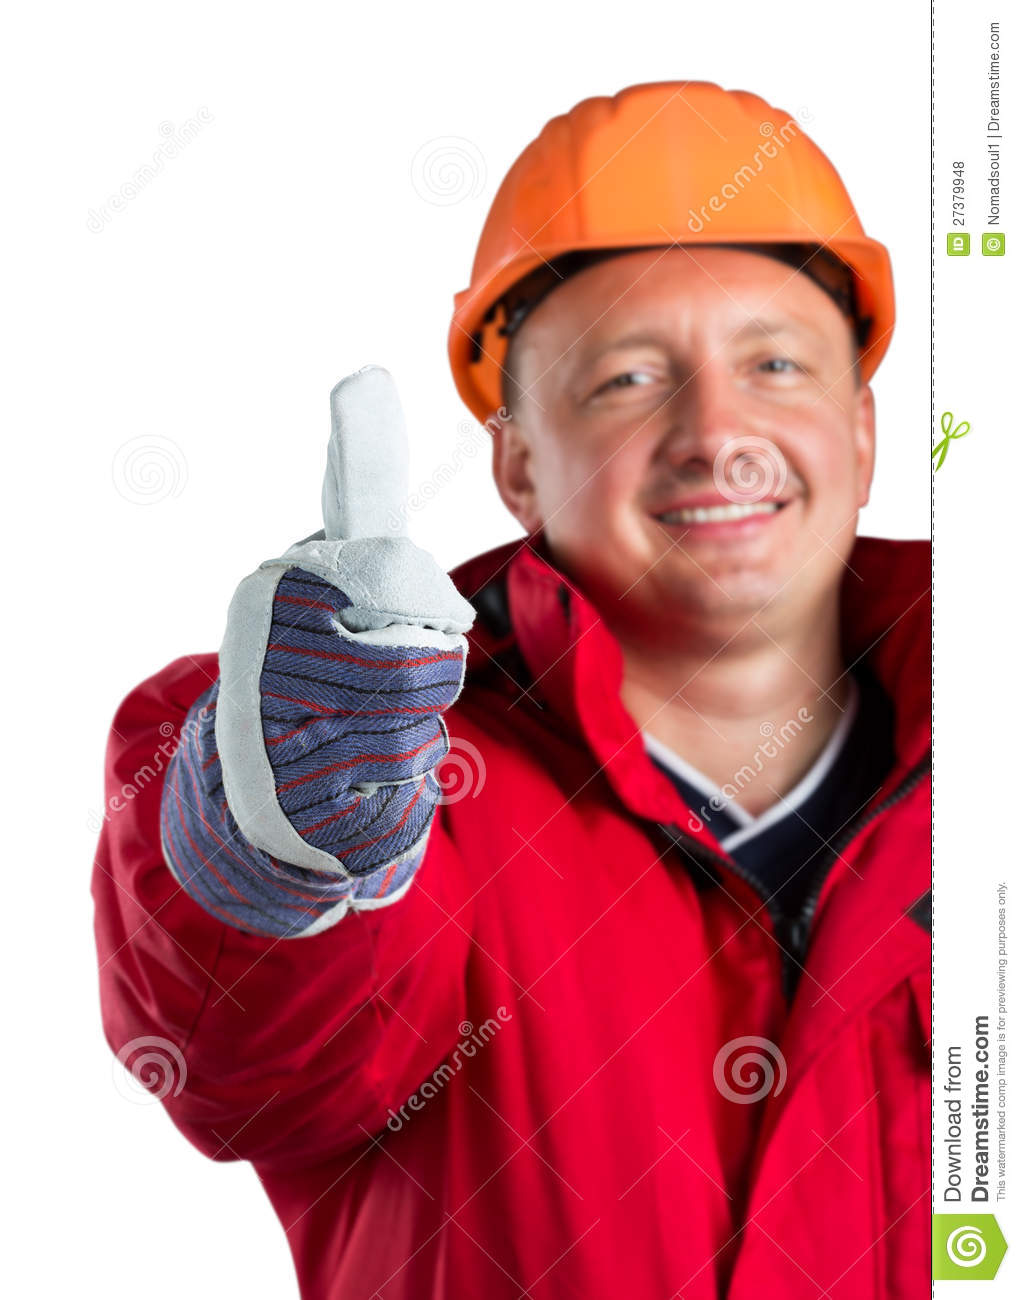 Happy Worker Royalty Free Stock Photos Image 27379948